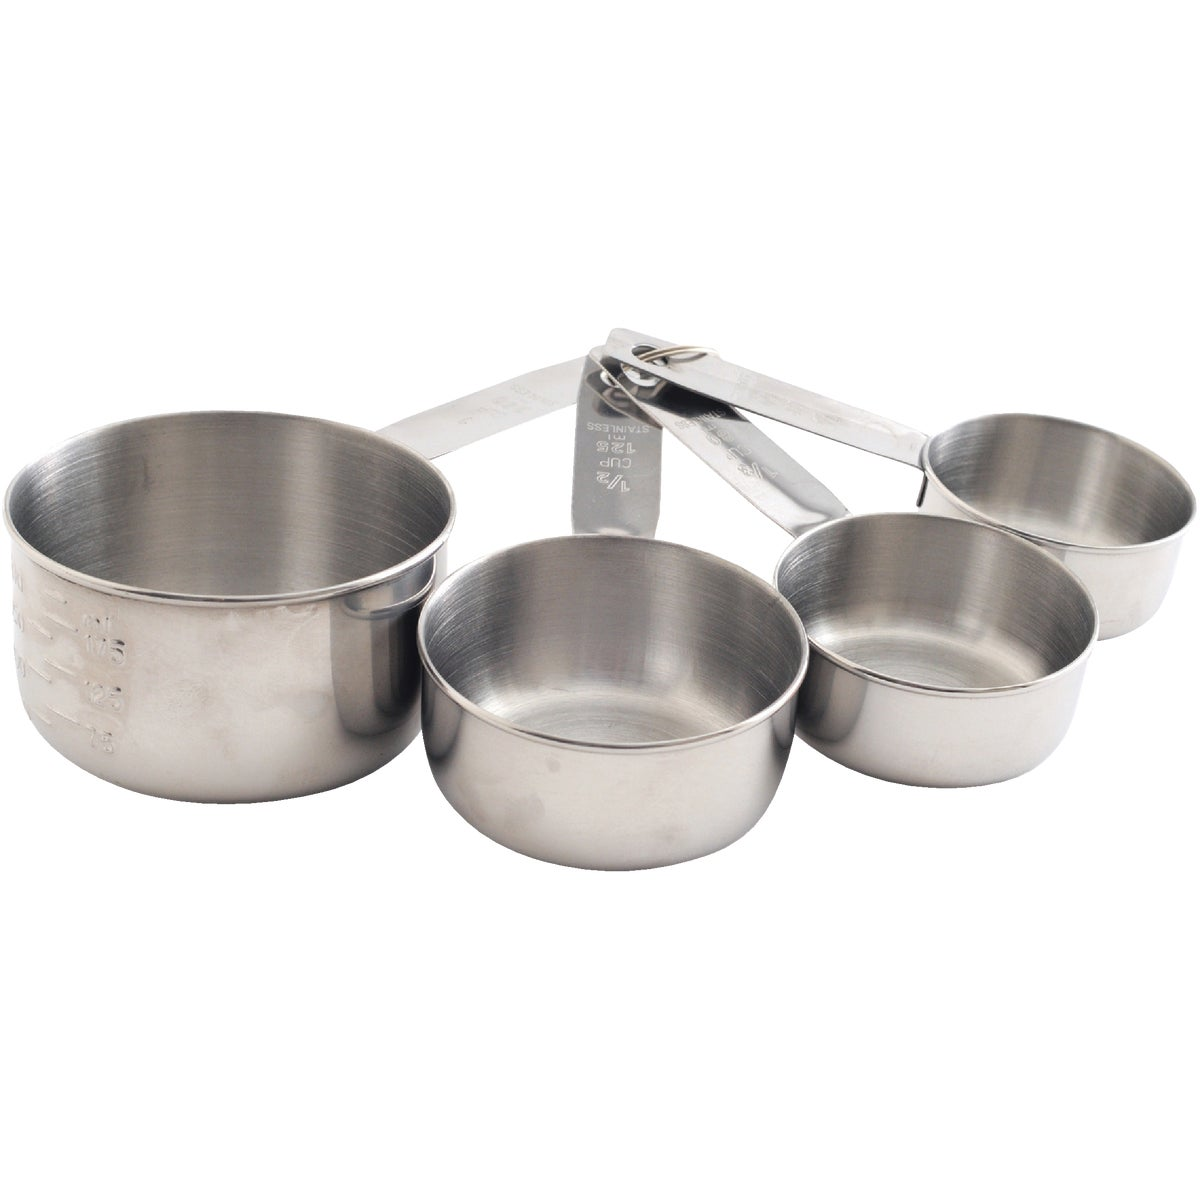 4PC SS MEASURING CUP - 3052 by Norpro